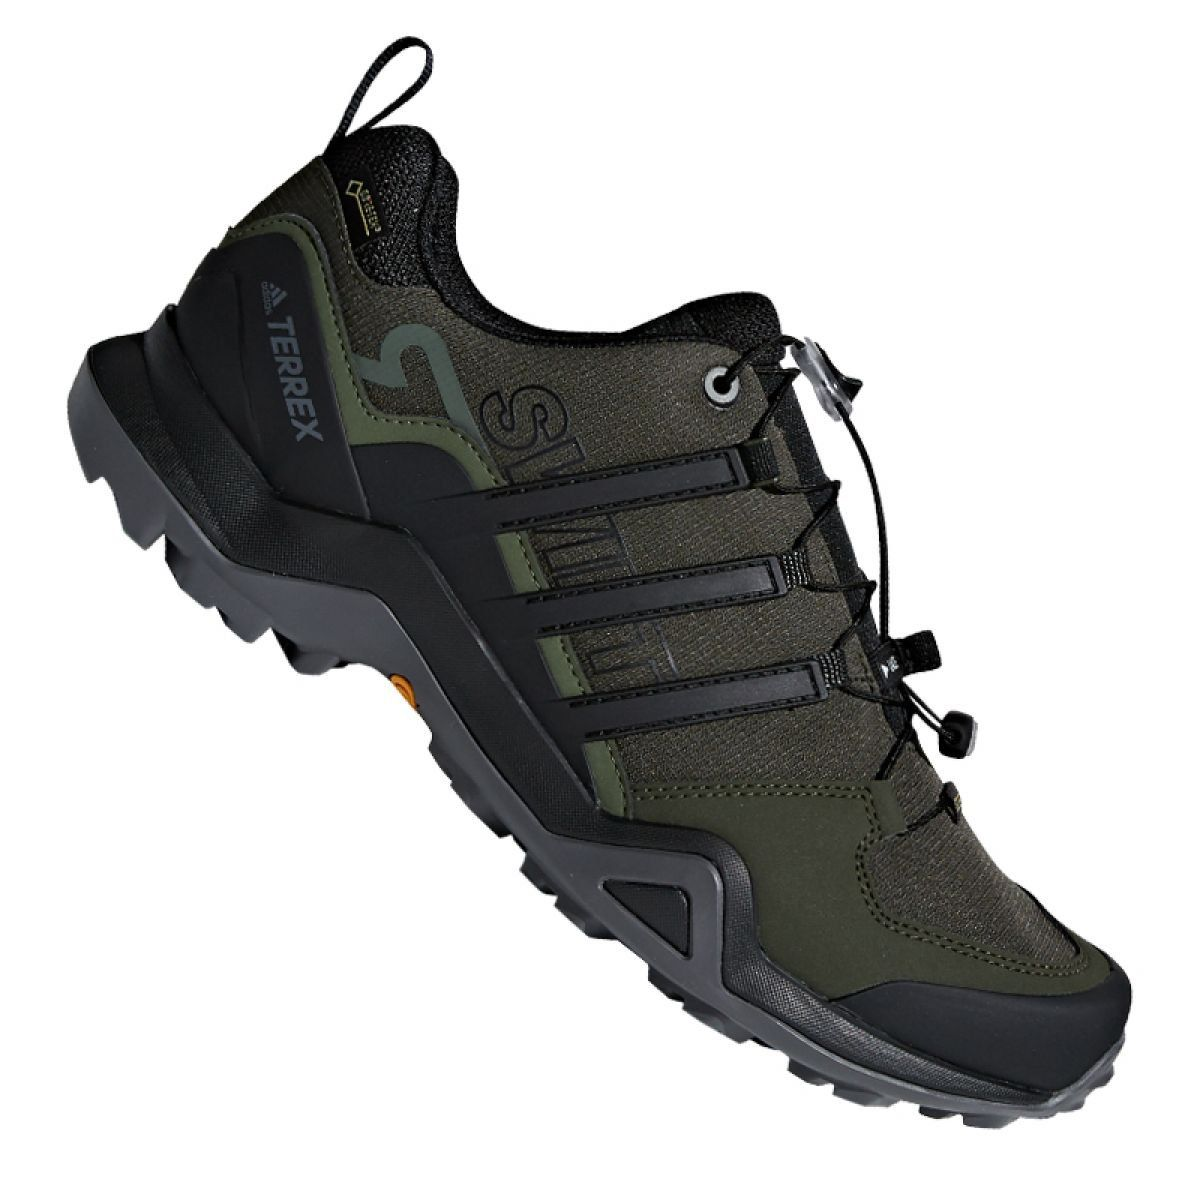 Adidas Terrex Swift R2 Gtx M Shoes Green Mens Hiking Boots Sports Shoes Adidas Shoes